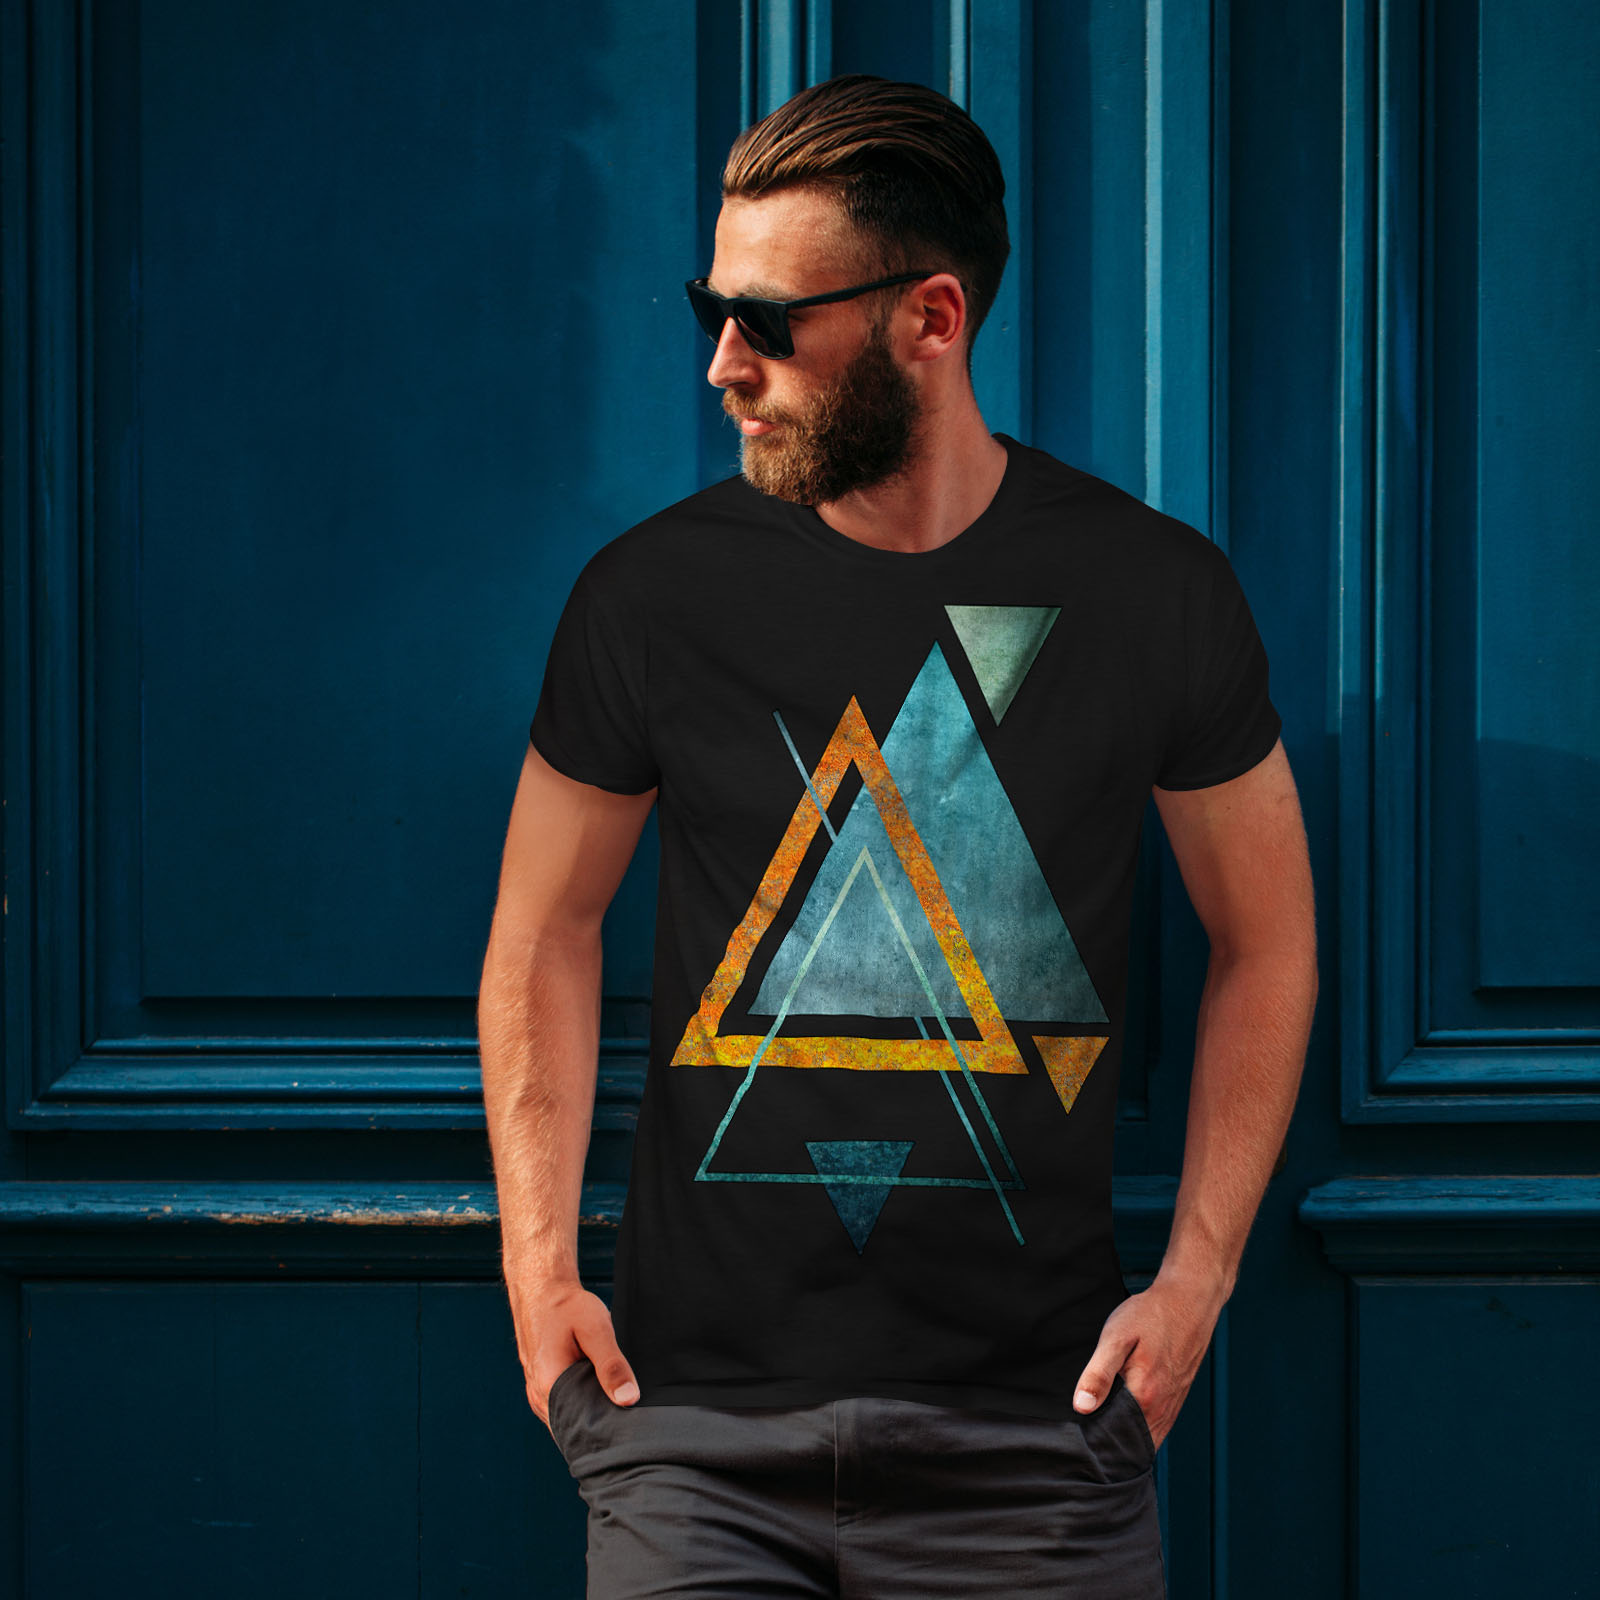 Wellcoda-Abstract-Triangle-T-shirt-homme-forme-design-graphique-imprime-Tee miniature 4